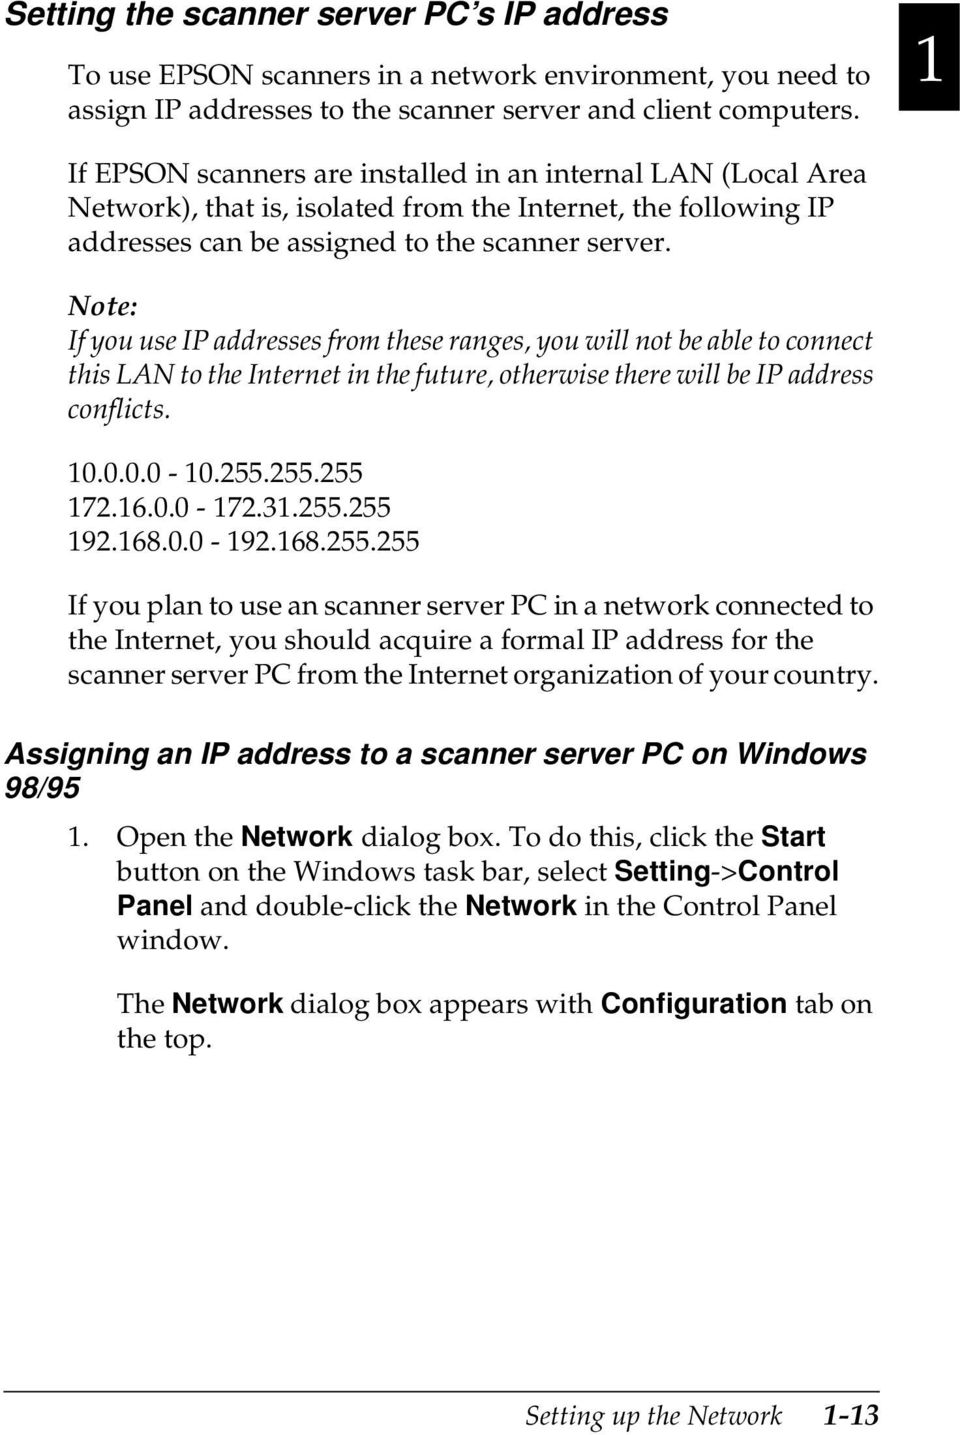 Note: If you use IP addresses from these ranges, you will not be able to connect this LAN to the Internet in the future, otherwise there will be IP address conflicts. 10.0.0.0-10.255.255.255 172.16.0.0-172.